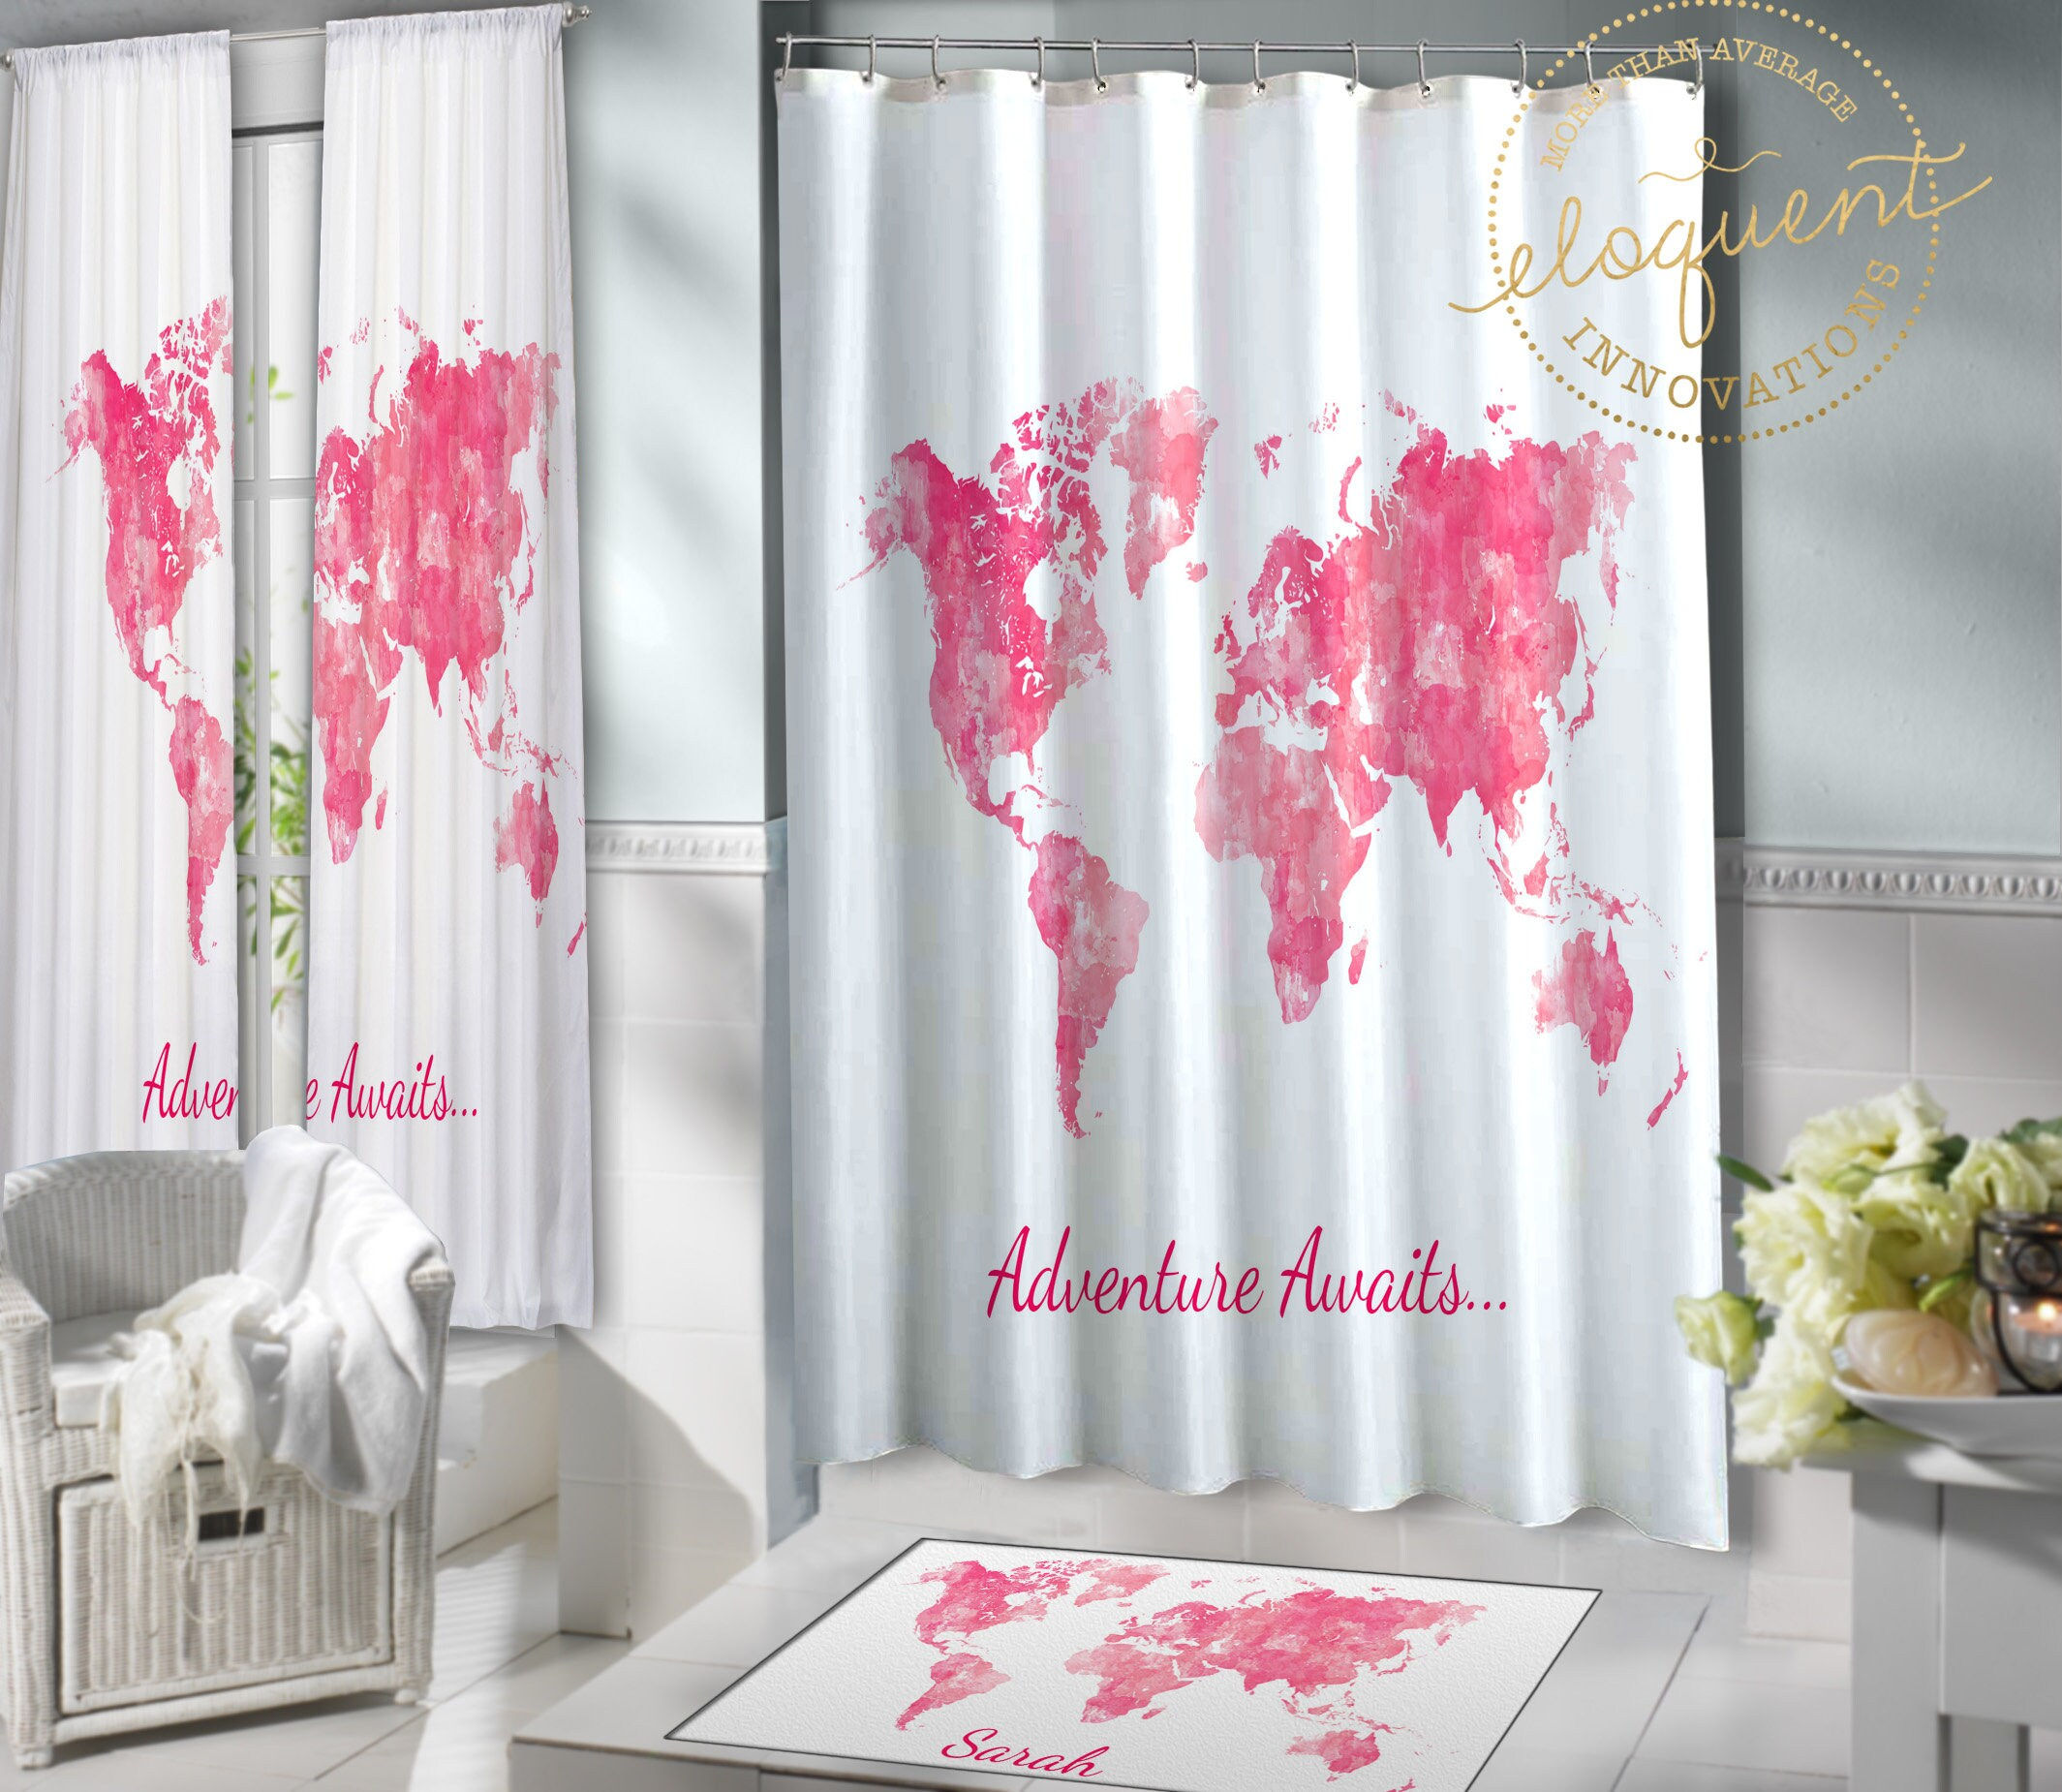 World Map Shower Curtain Fabric Can Be Personalized With Name Pink Watercolor Kids Girls Bathroom Rug Adventure Awaits 398